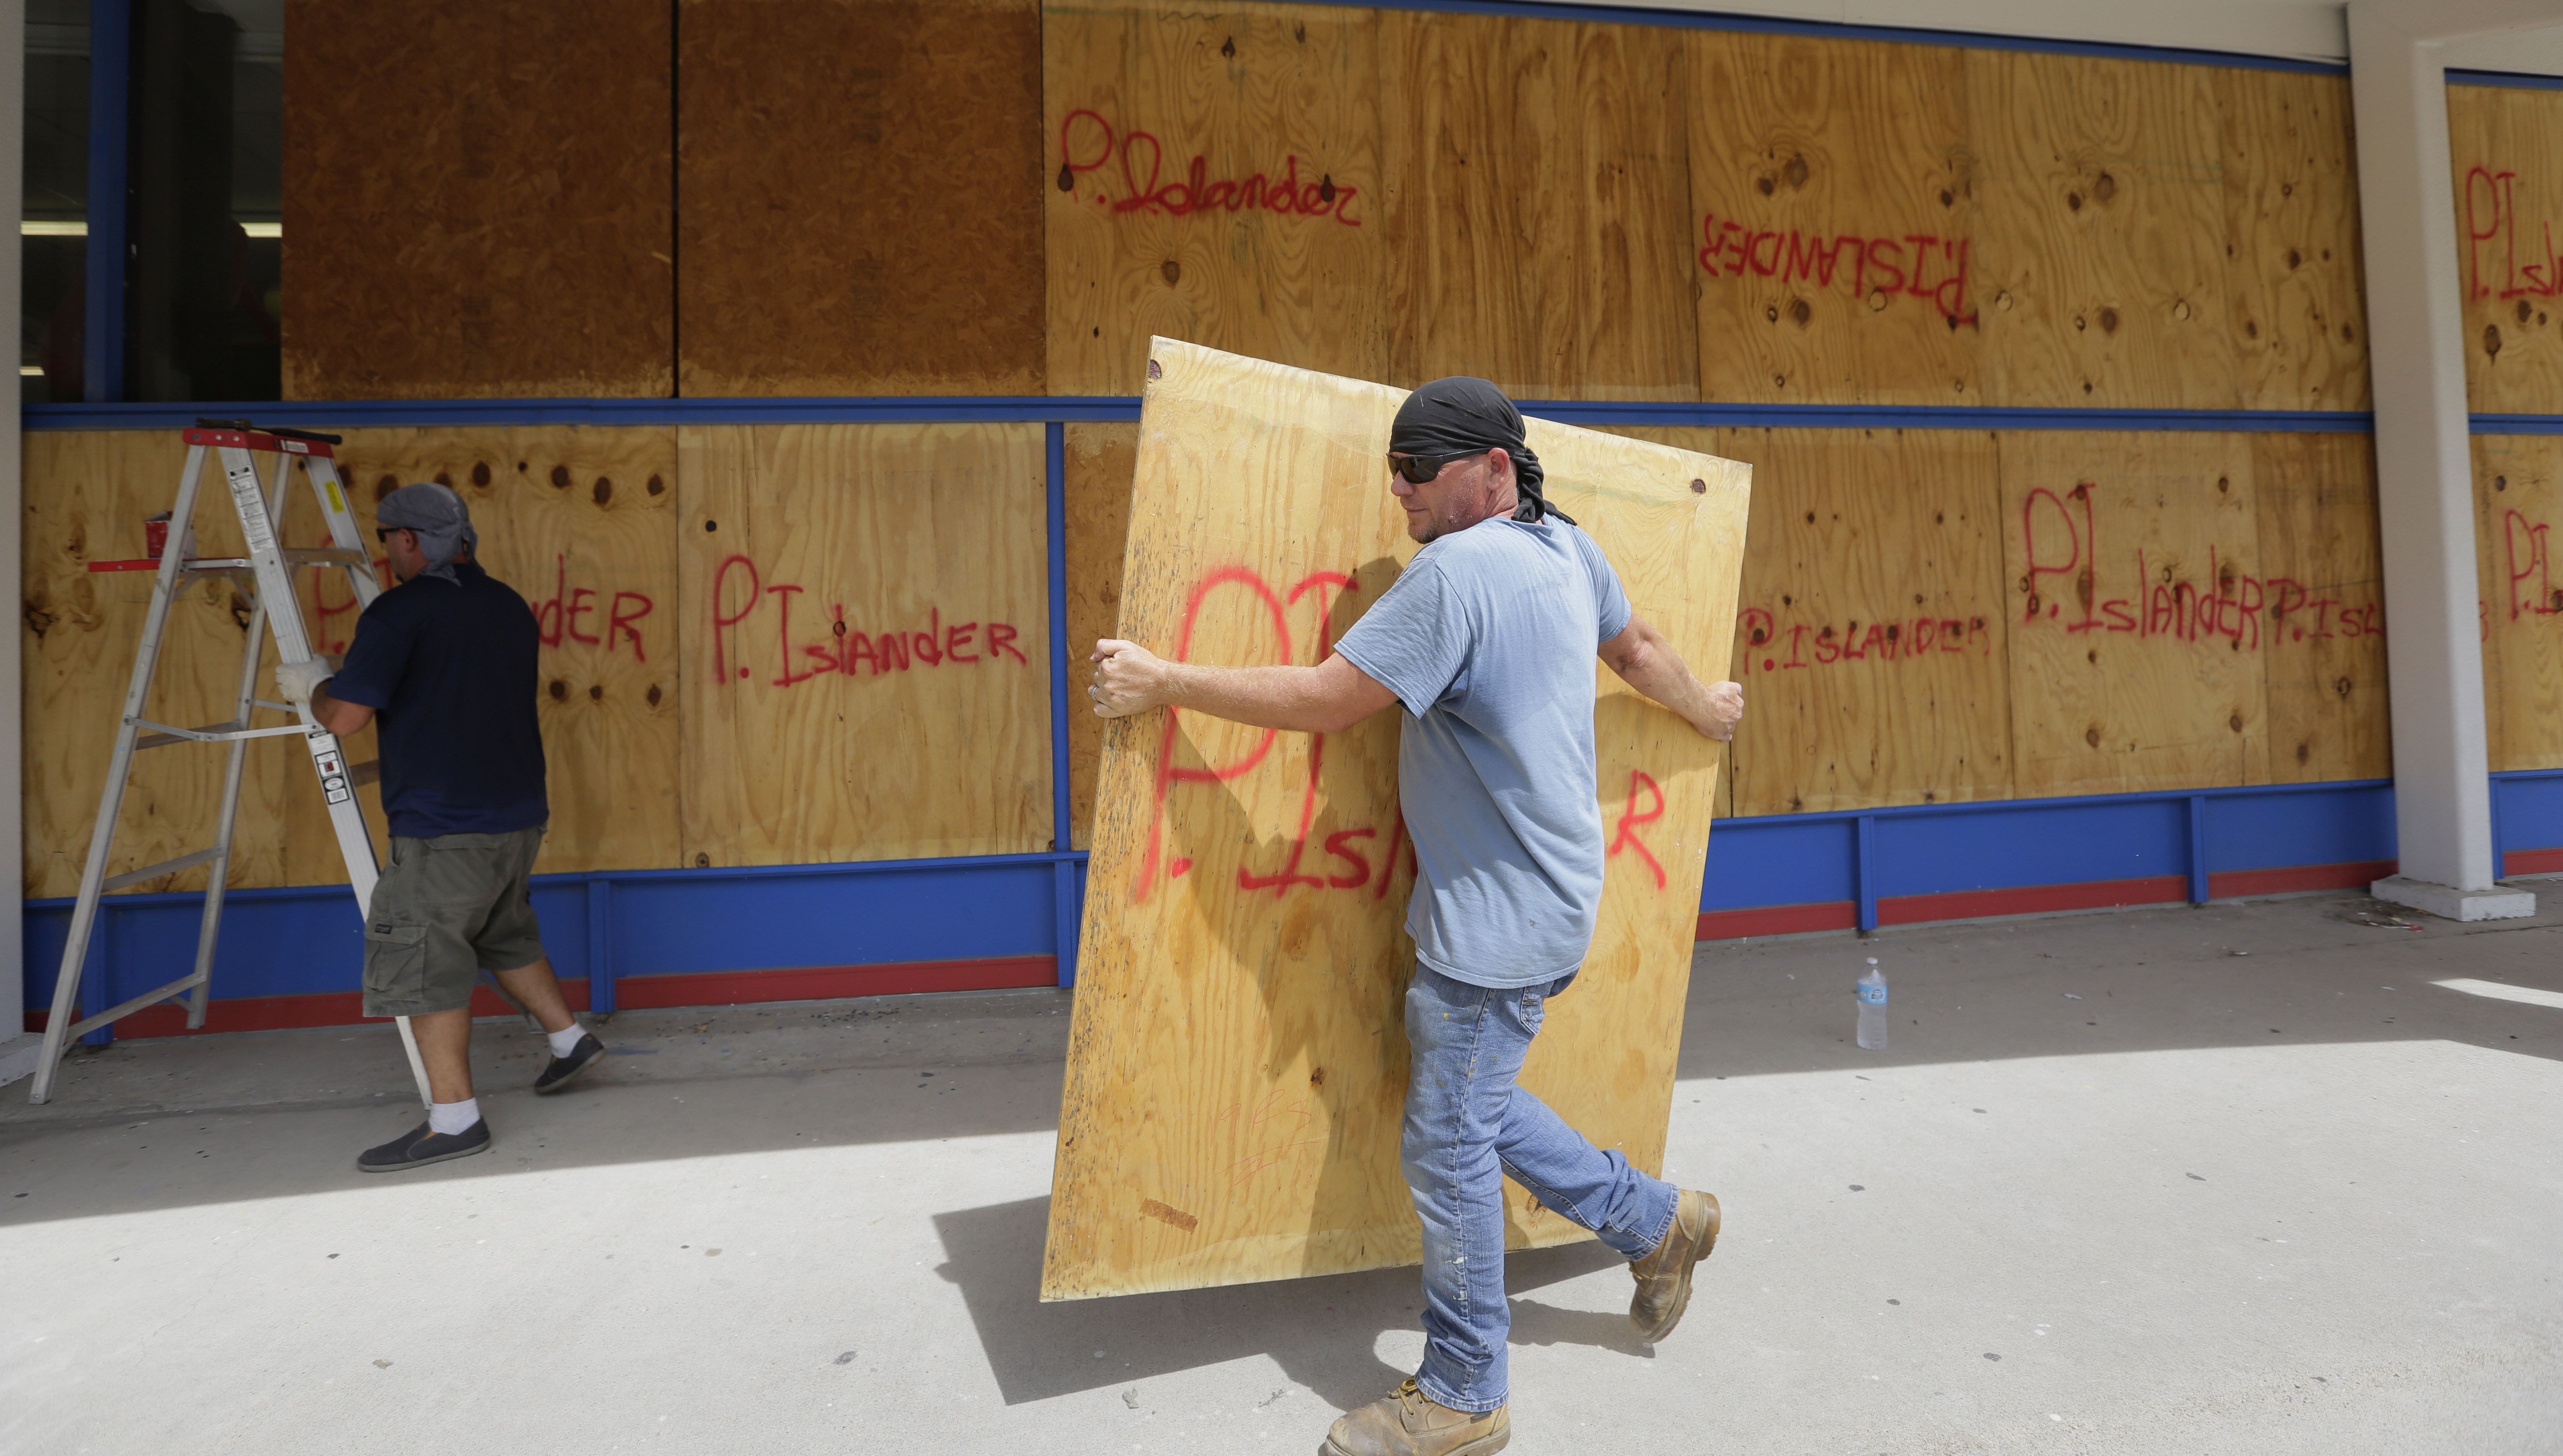 James Redford carries a sheet of plywood as he helps board up windows in preparation for Hurricane Harvey in Corpus Christi, Texas, Aug. 24, 2017.